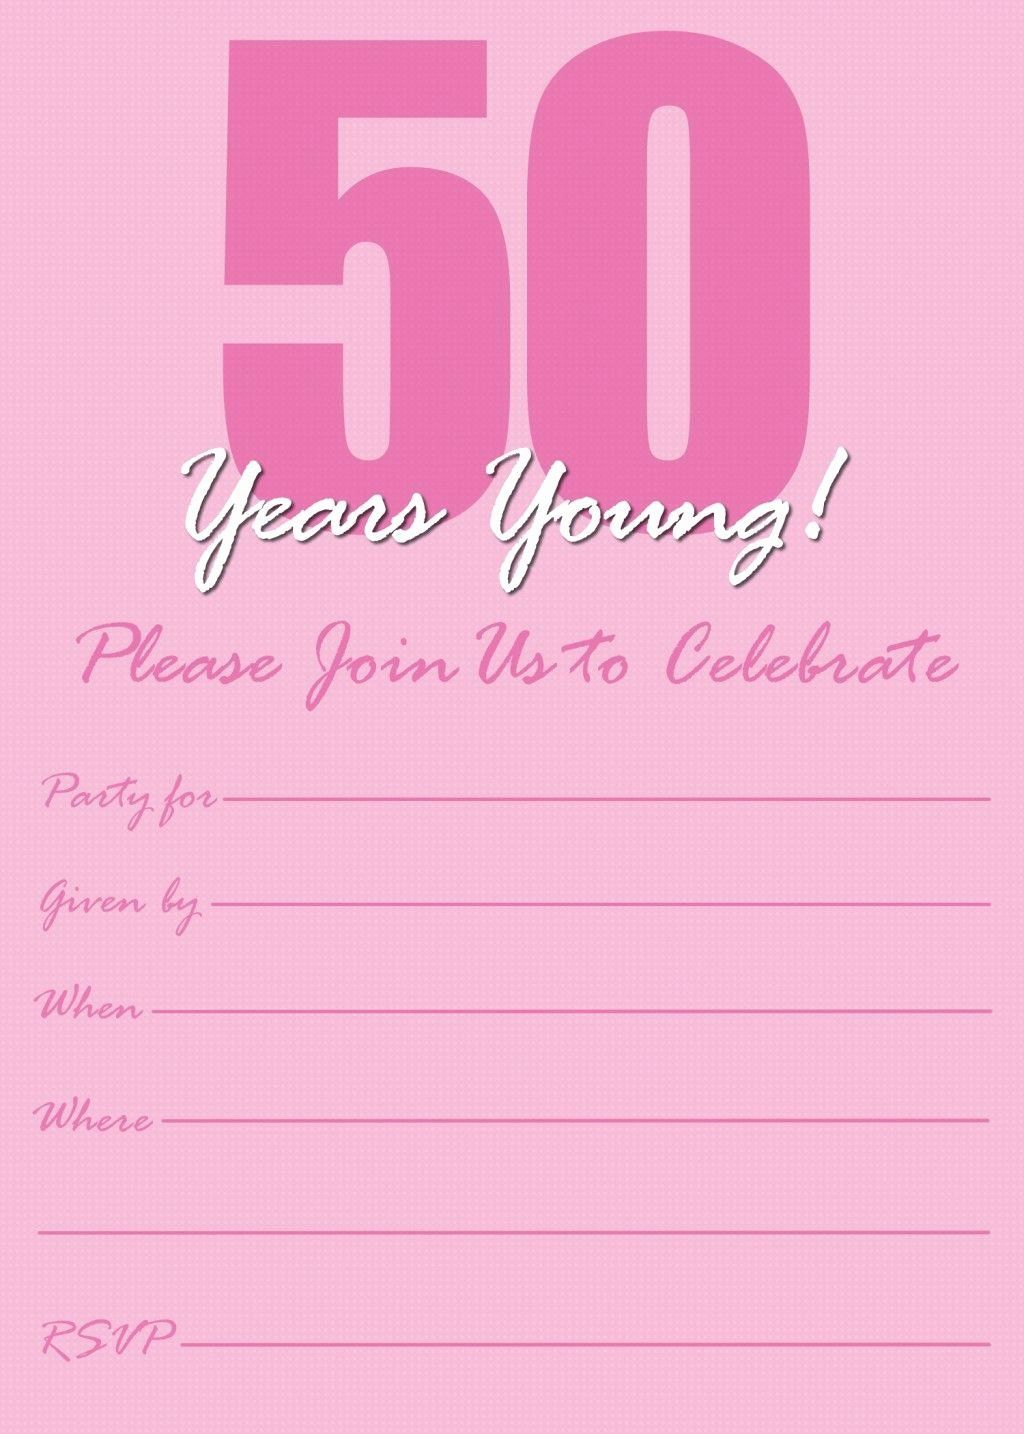 50th Birthday Invitation Template Lovely Free Printable 50th Birthday Party Invitation Templates 50freeprintables In 2020 Party Invite Template Birthday Invitation Templates Birthday Party Invitation Templates